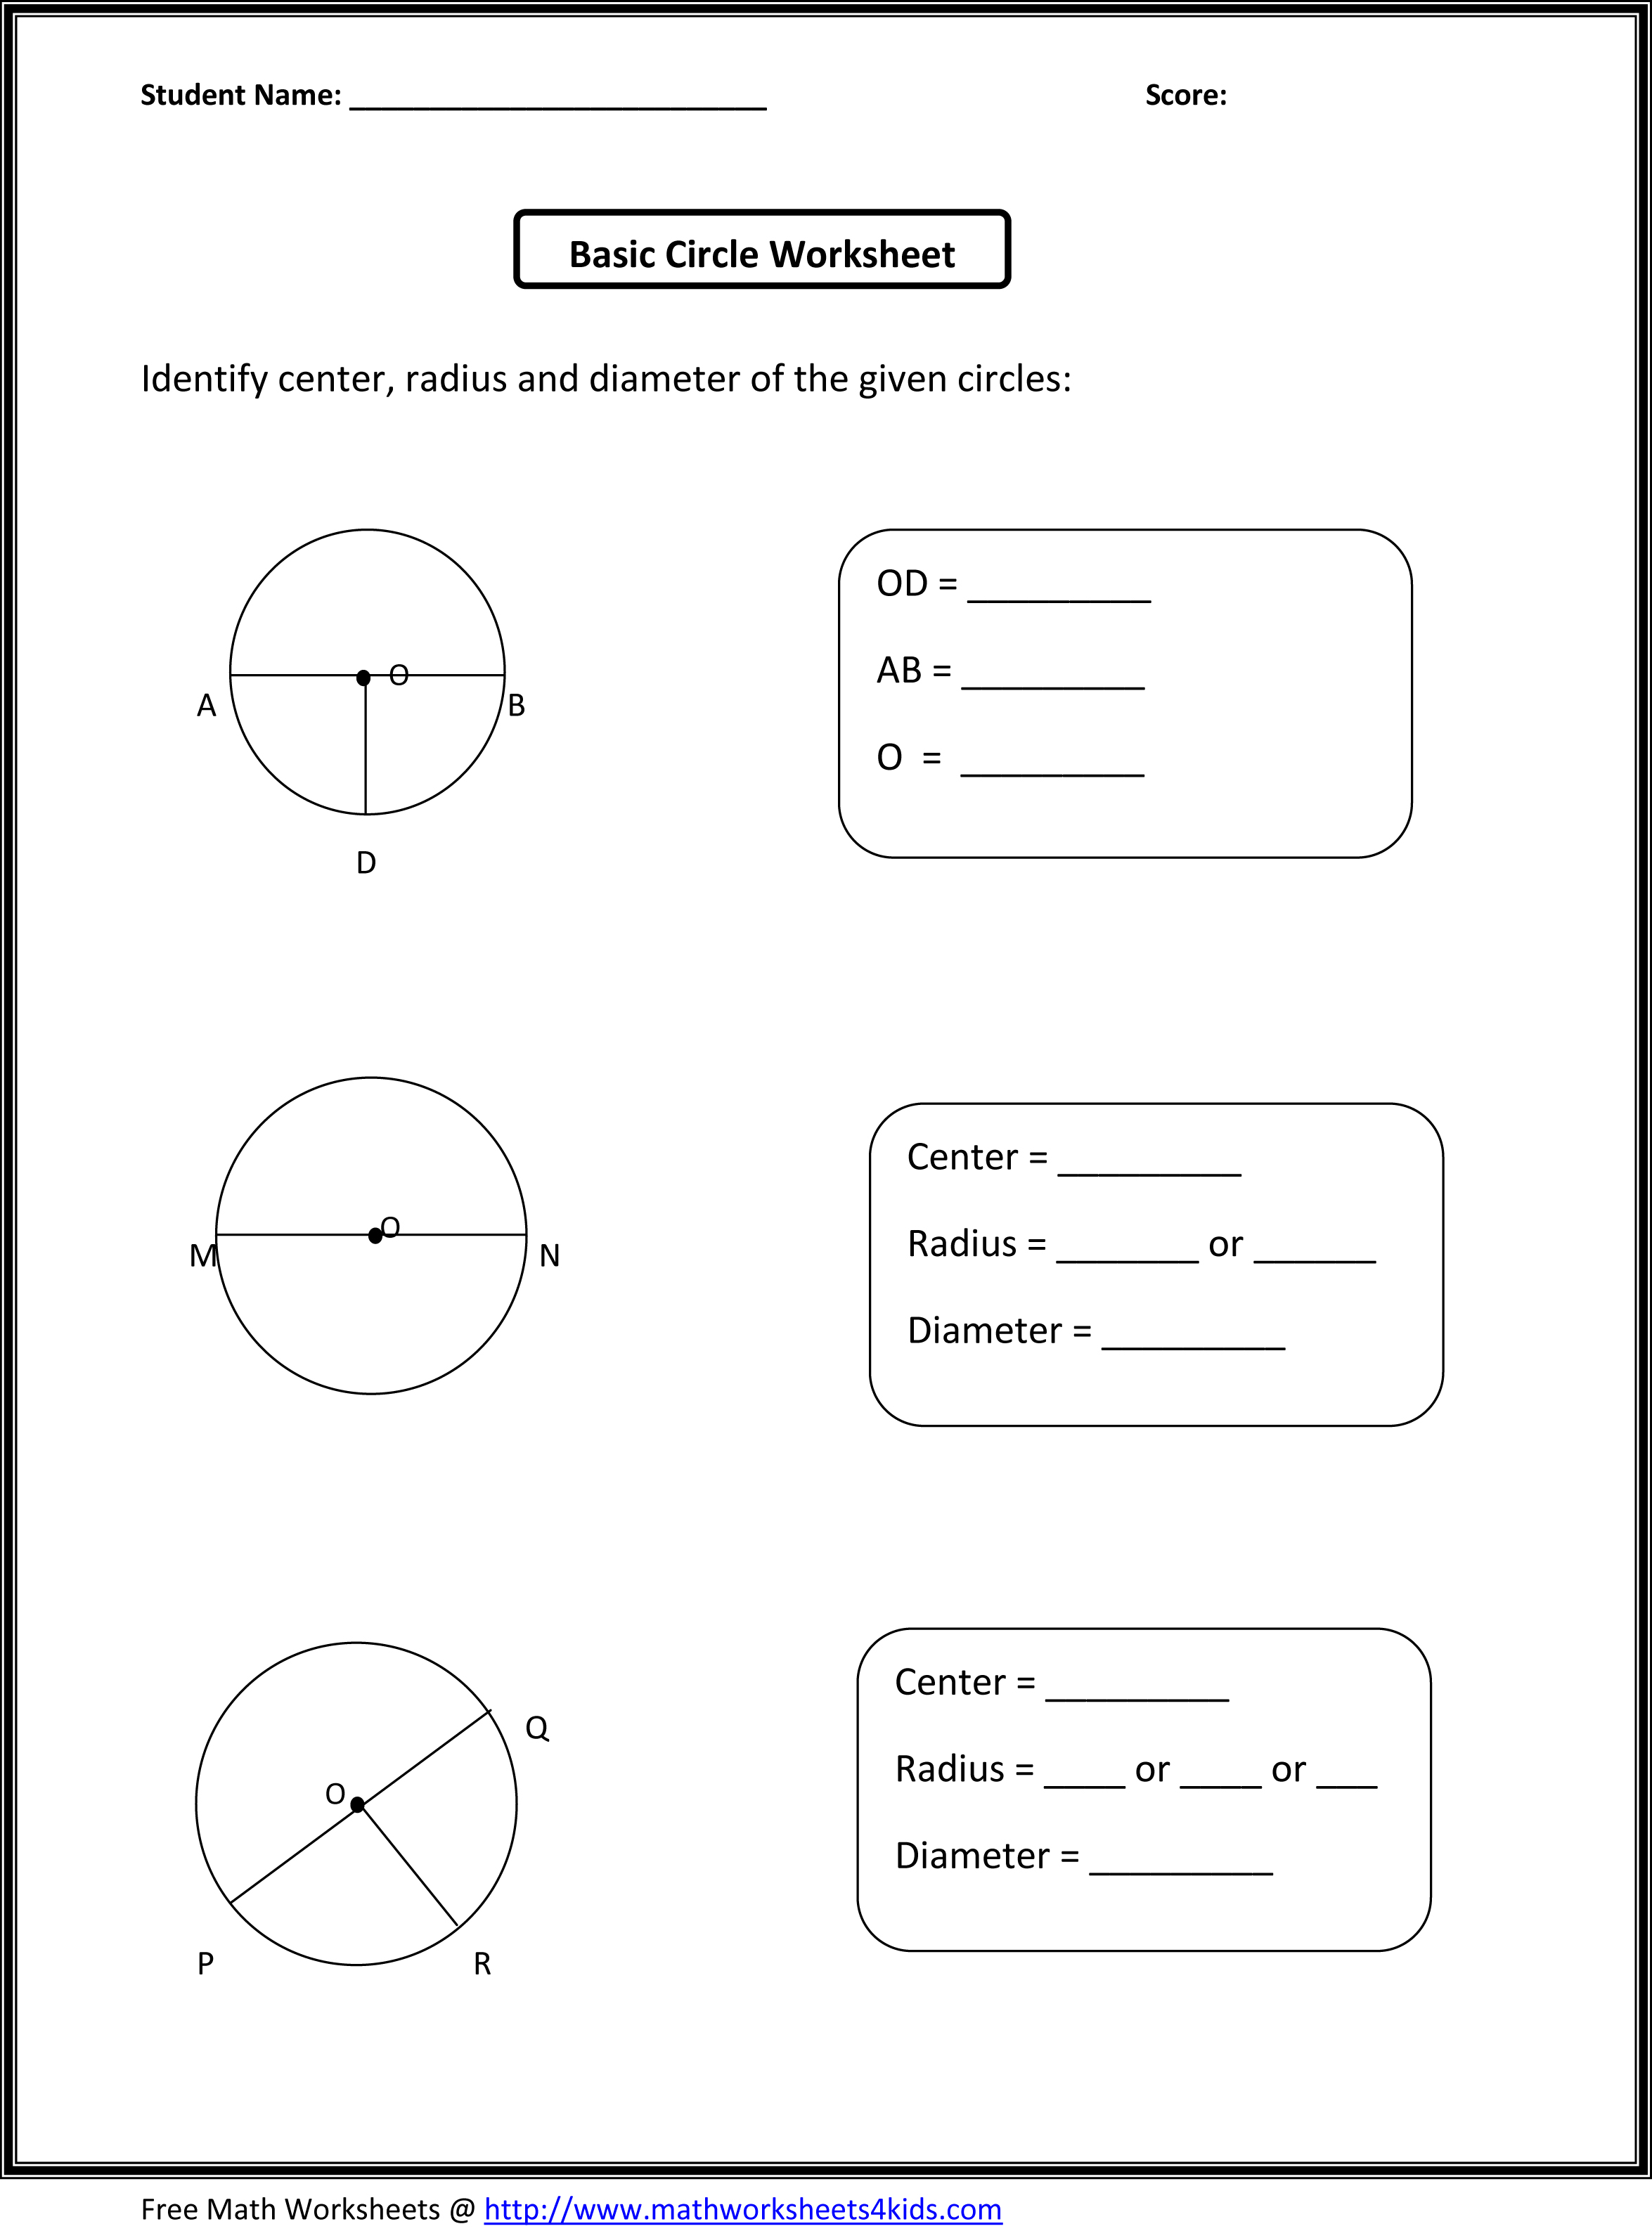 Math Problems For 3Rd Graders Worksheets – Third Grade Math Word Problems Worksheets